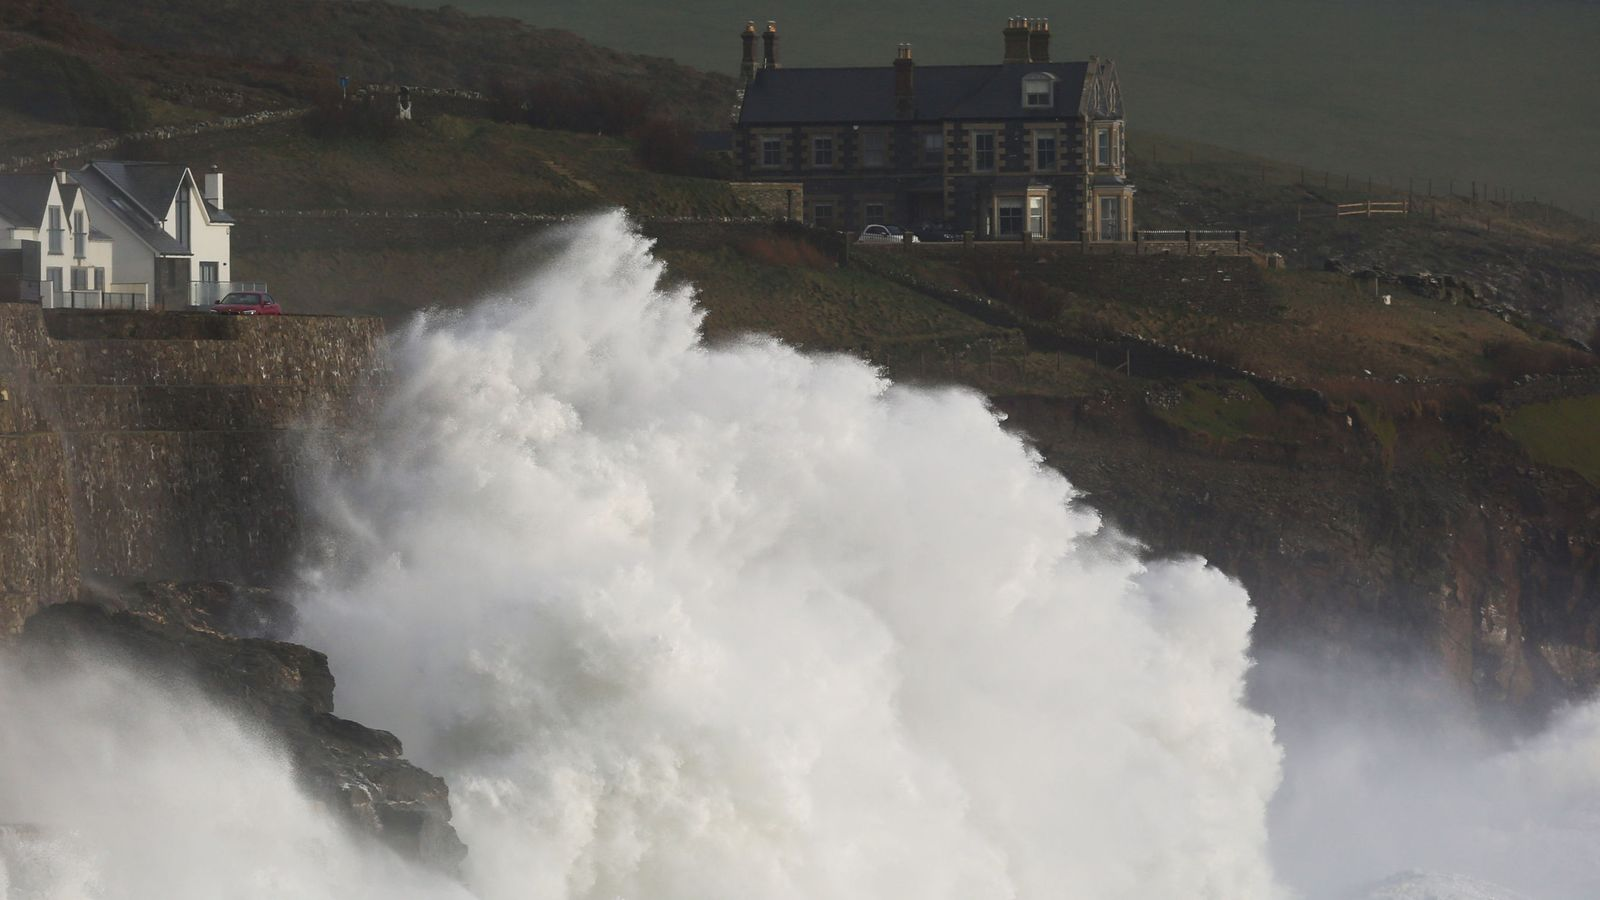 UK weather: Storm Dennis to bring a month of rain in 24 hours, says Met Office